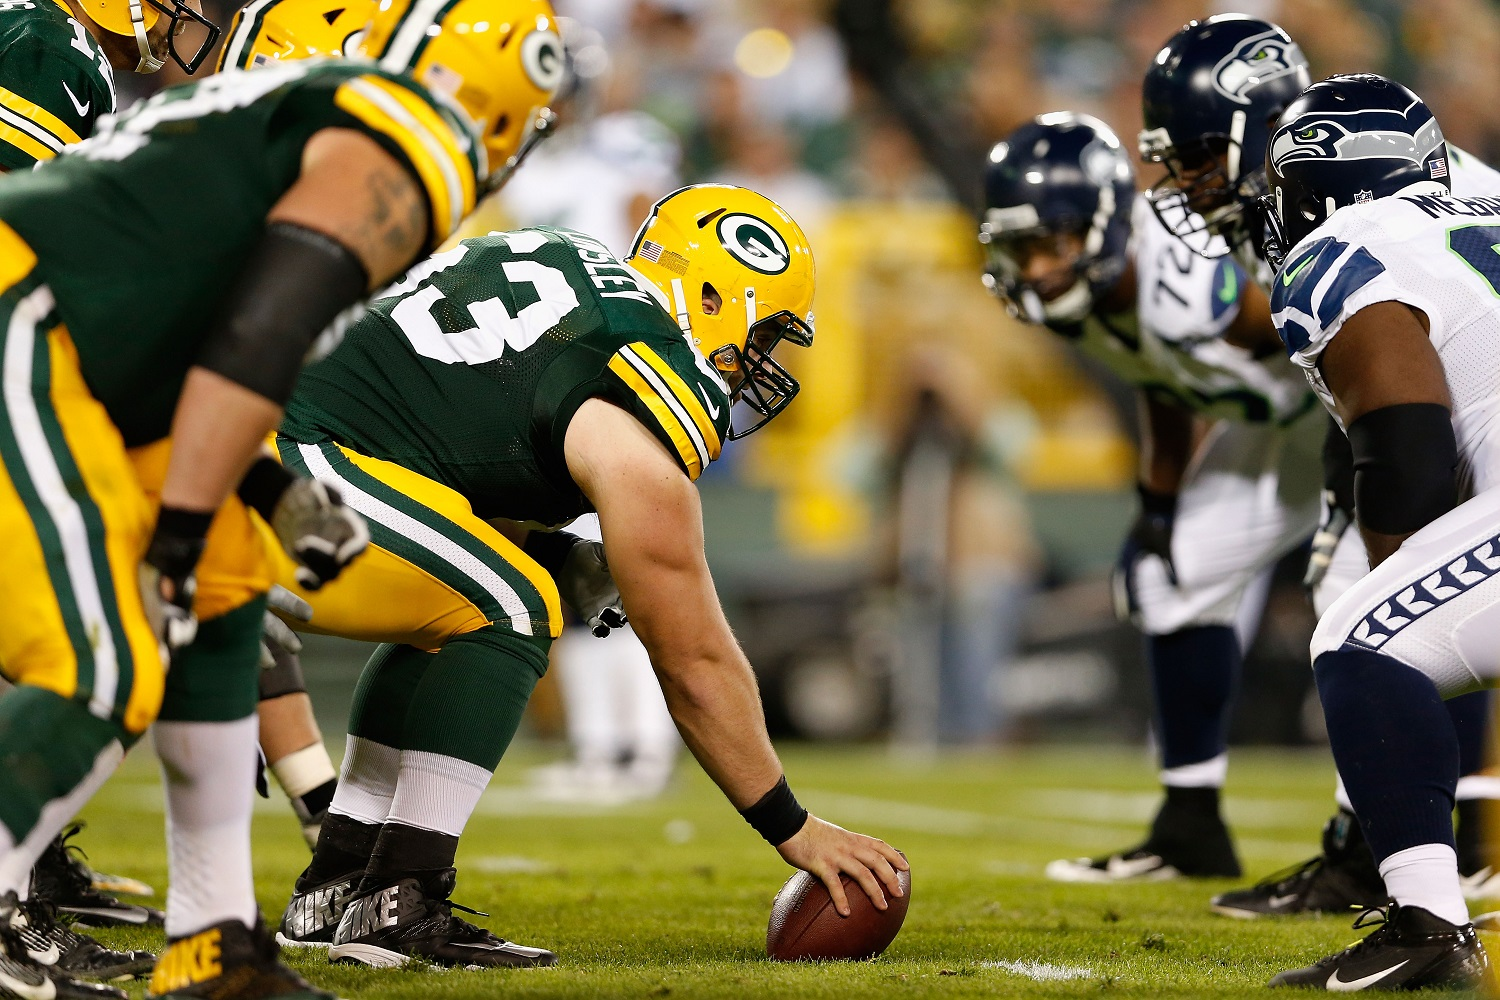 GREEN BAY, WI - SEPTEMBER 20:  Center Corey Linsley #63 of the Green Bay Packers prepares to snap the football against the Seattle Seahawks during the NFL game at Lambeau Field on September 20, 2015 in Green Bay, Wisconsin.  (Photo by Christian Petersen/Getty Images)